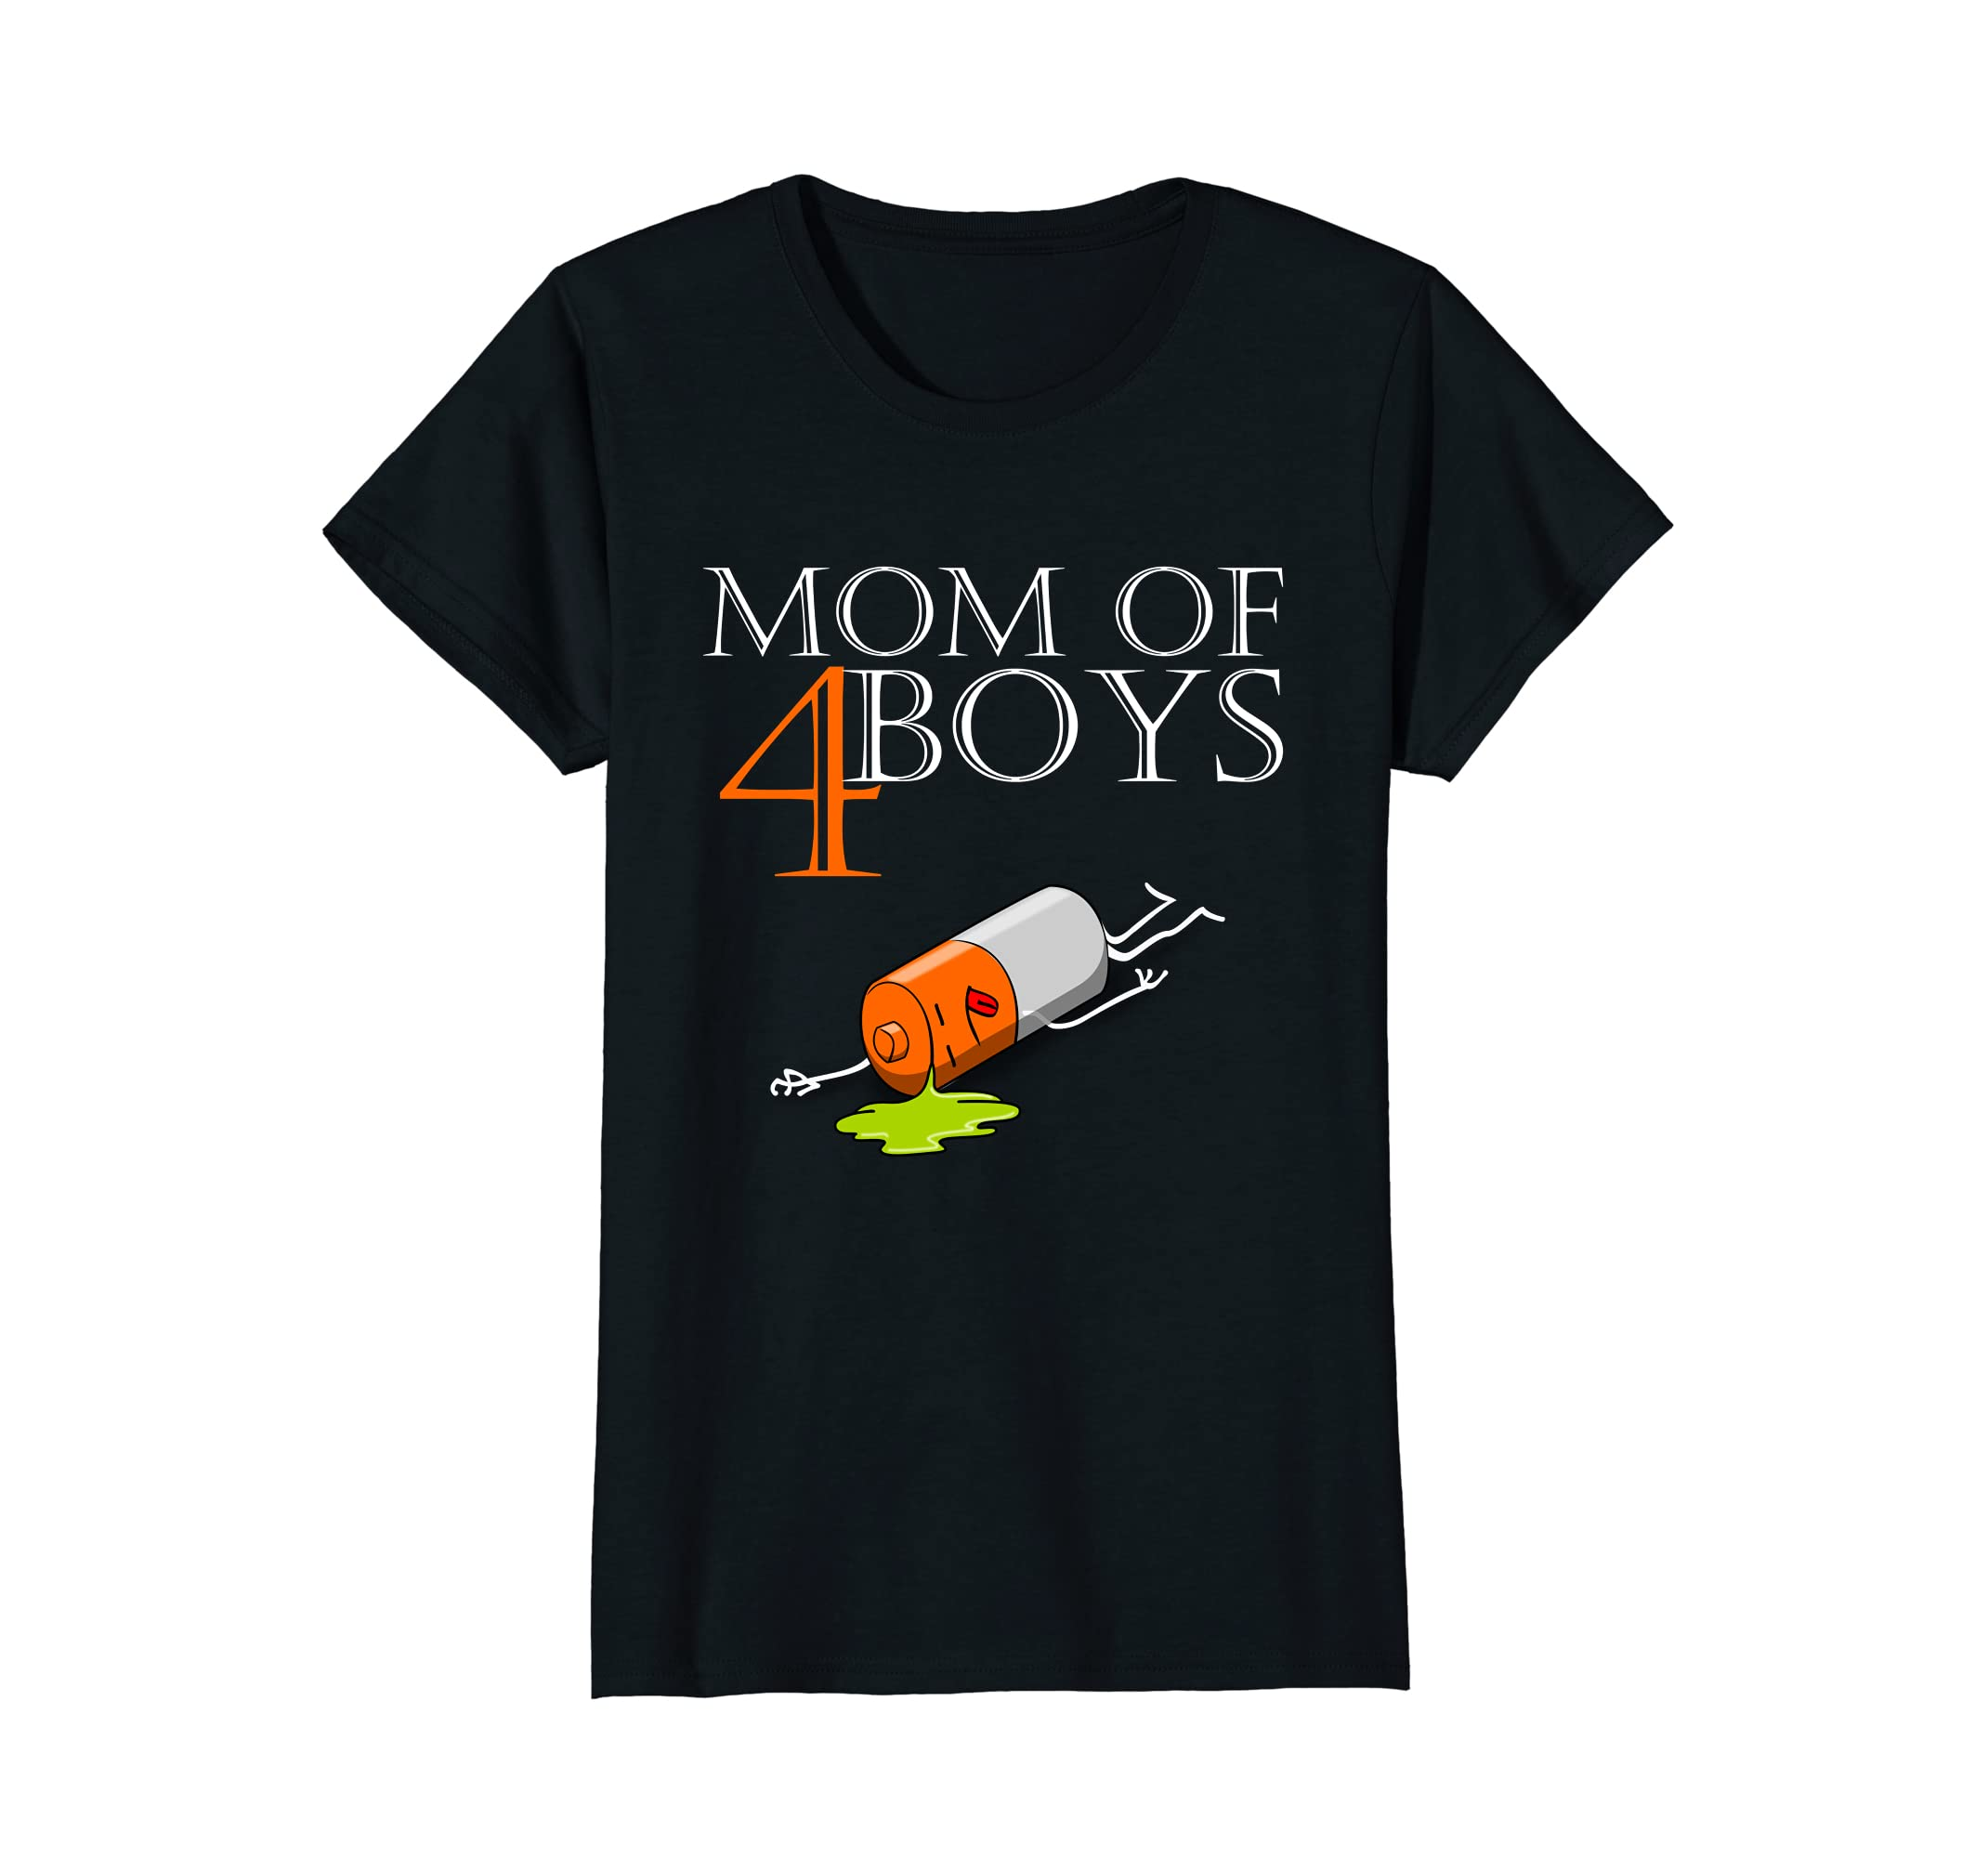 Womens mom of 4 boys - Funky Shirt for mothers with four sons-ah my shirt one gift